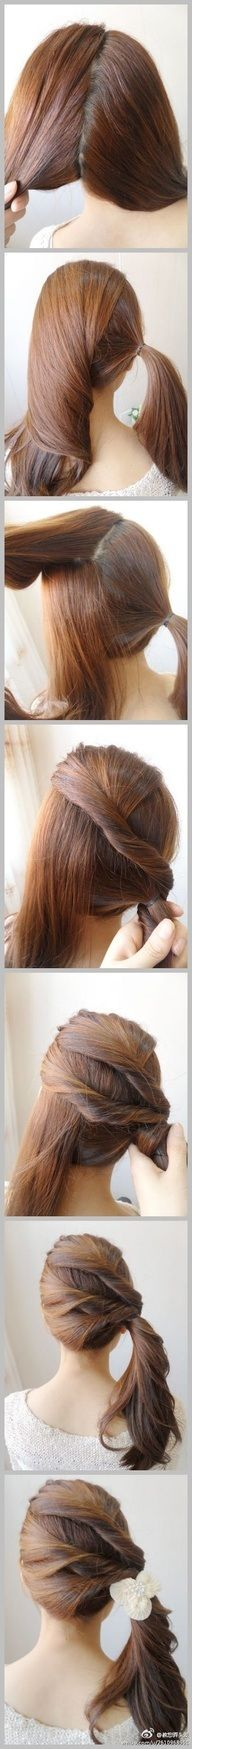 This would look great with a side bun. It would make it more sophisticated.